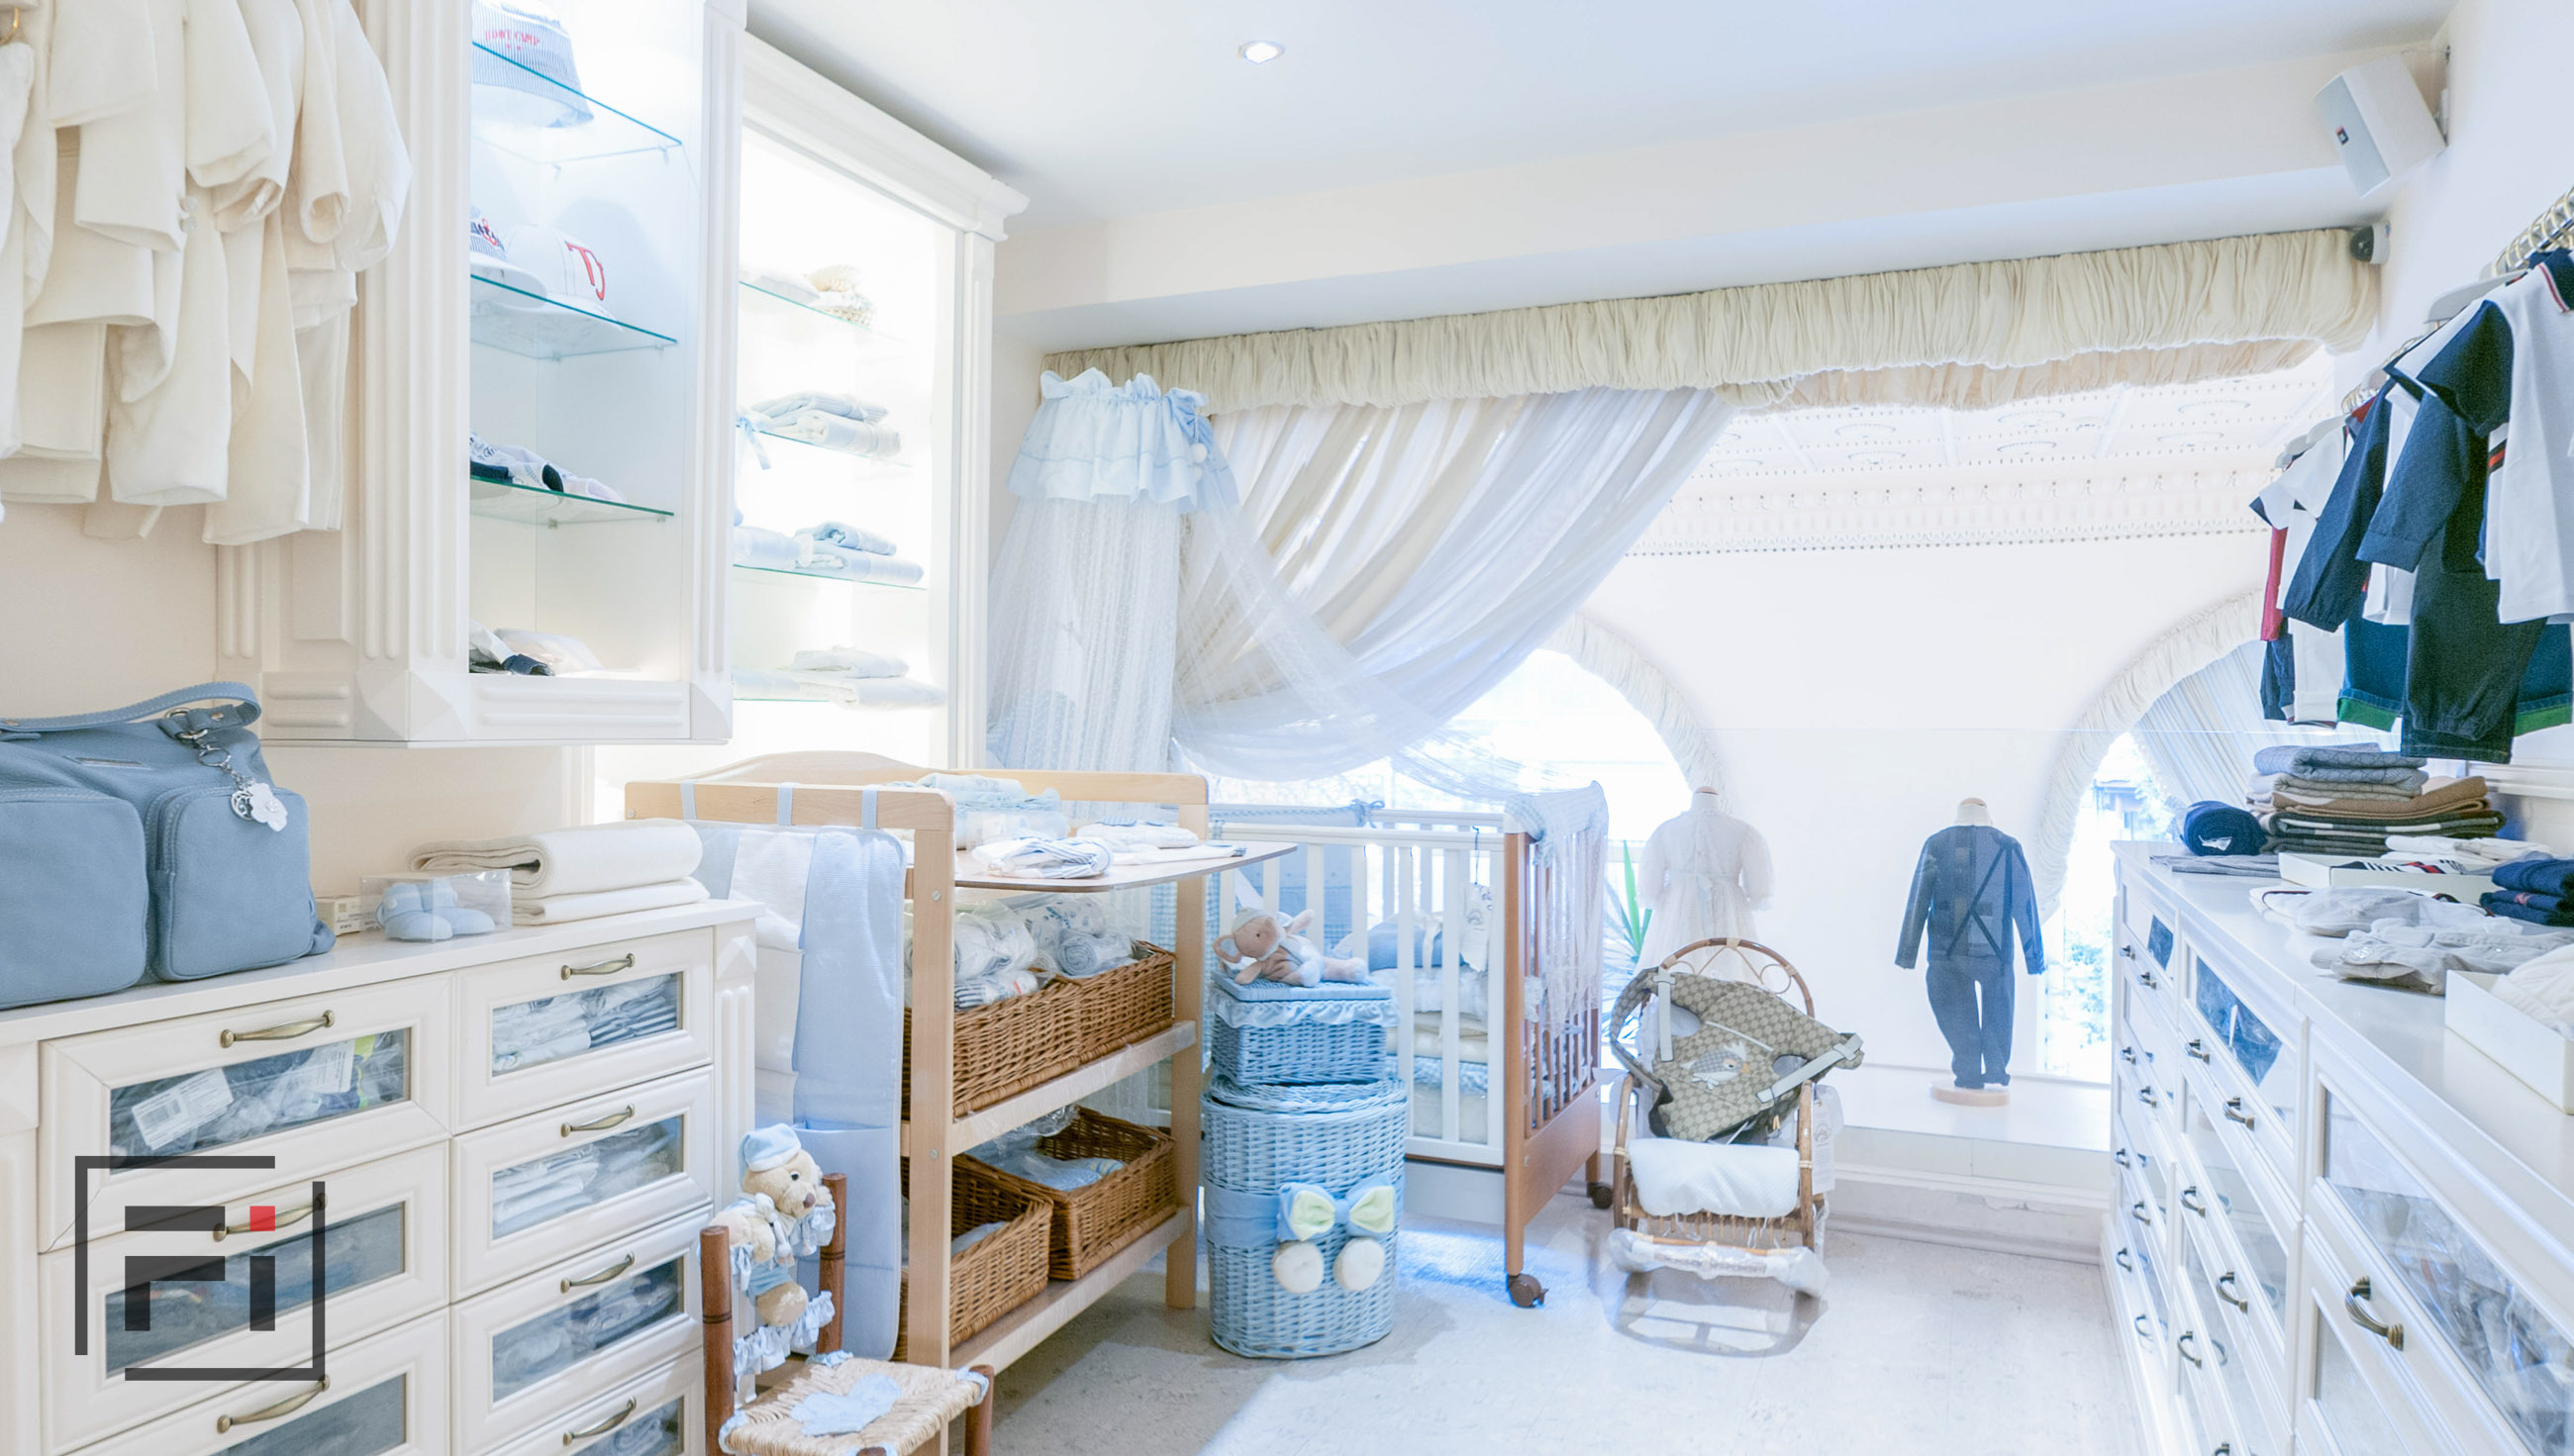 Baby Marlen Helen outsource real estate photo editing office interior photography of white children store in Kiev with blue clothes by Fantastic Imago-10